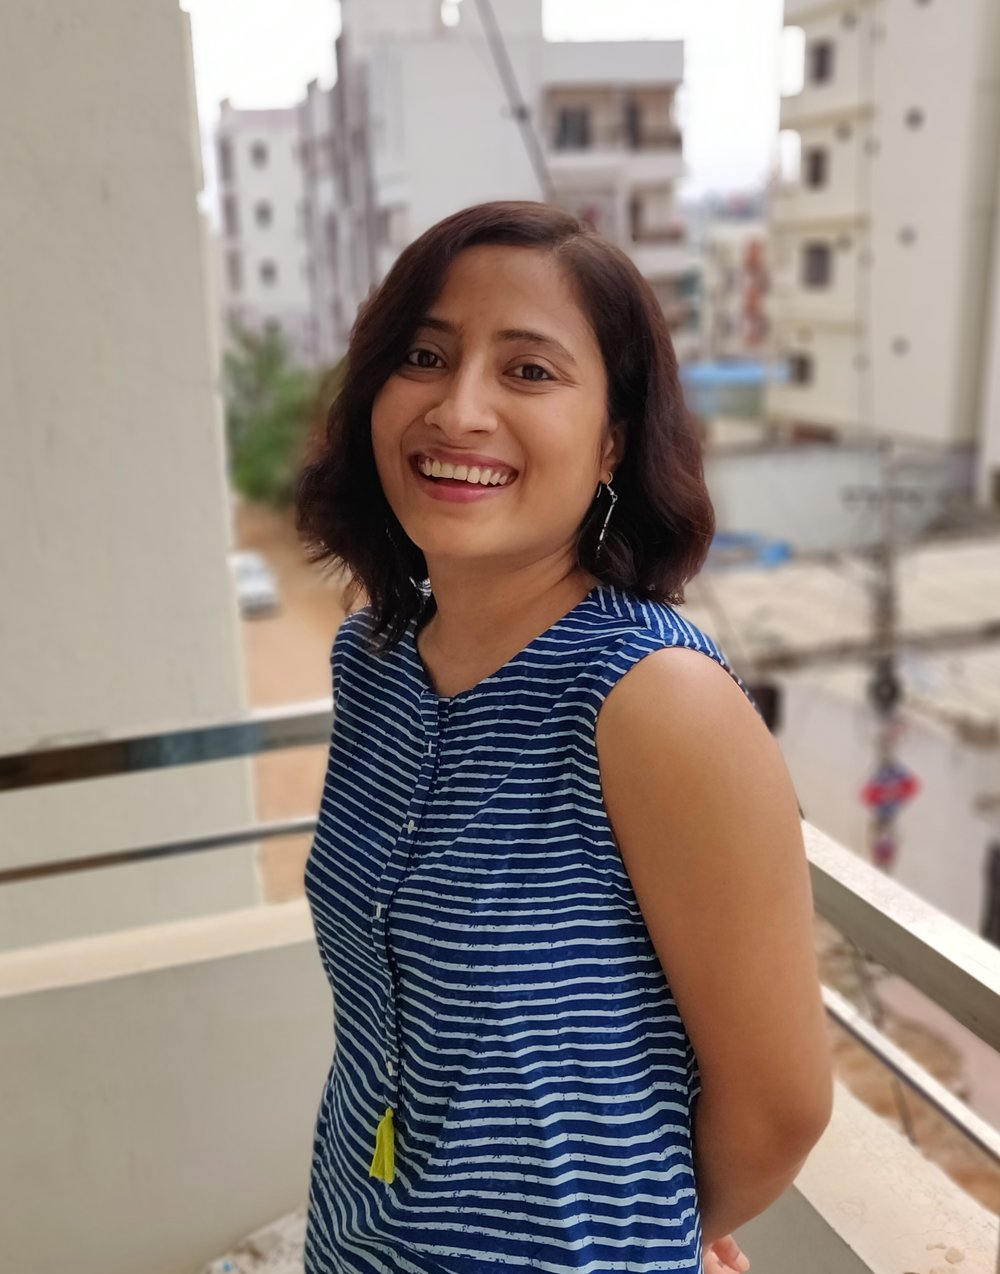 Tathagataa Basu   Tathagataa, a development professional, writer, and lifelong learner is the head of communication, looks after the collaborations and operations across the 12 nations, and supports the content team.